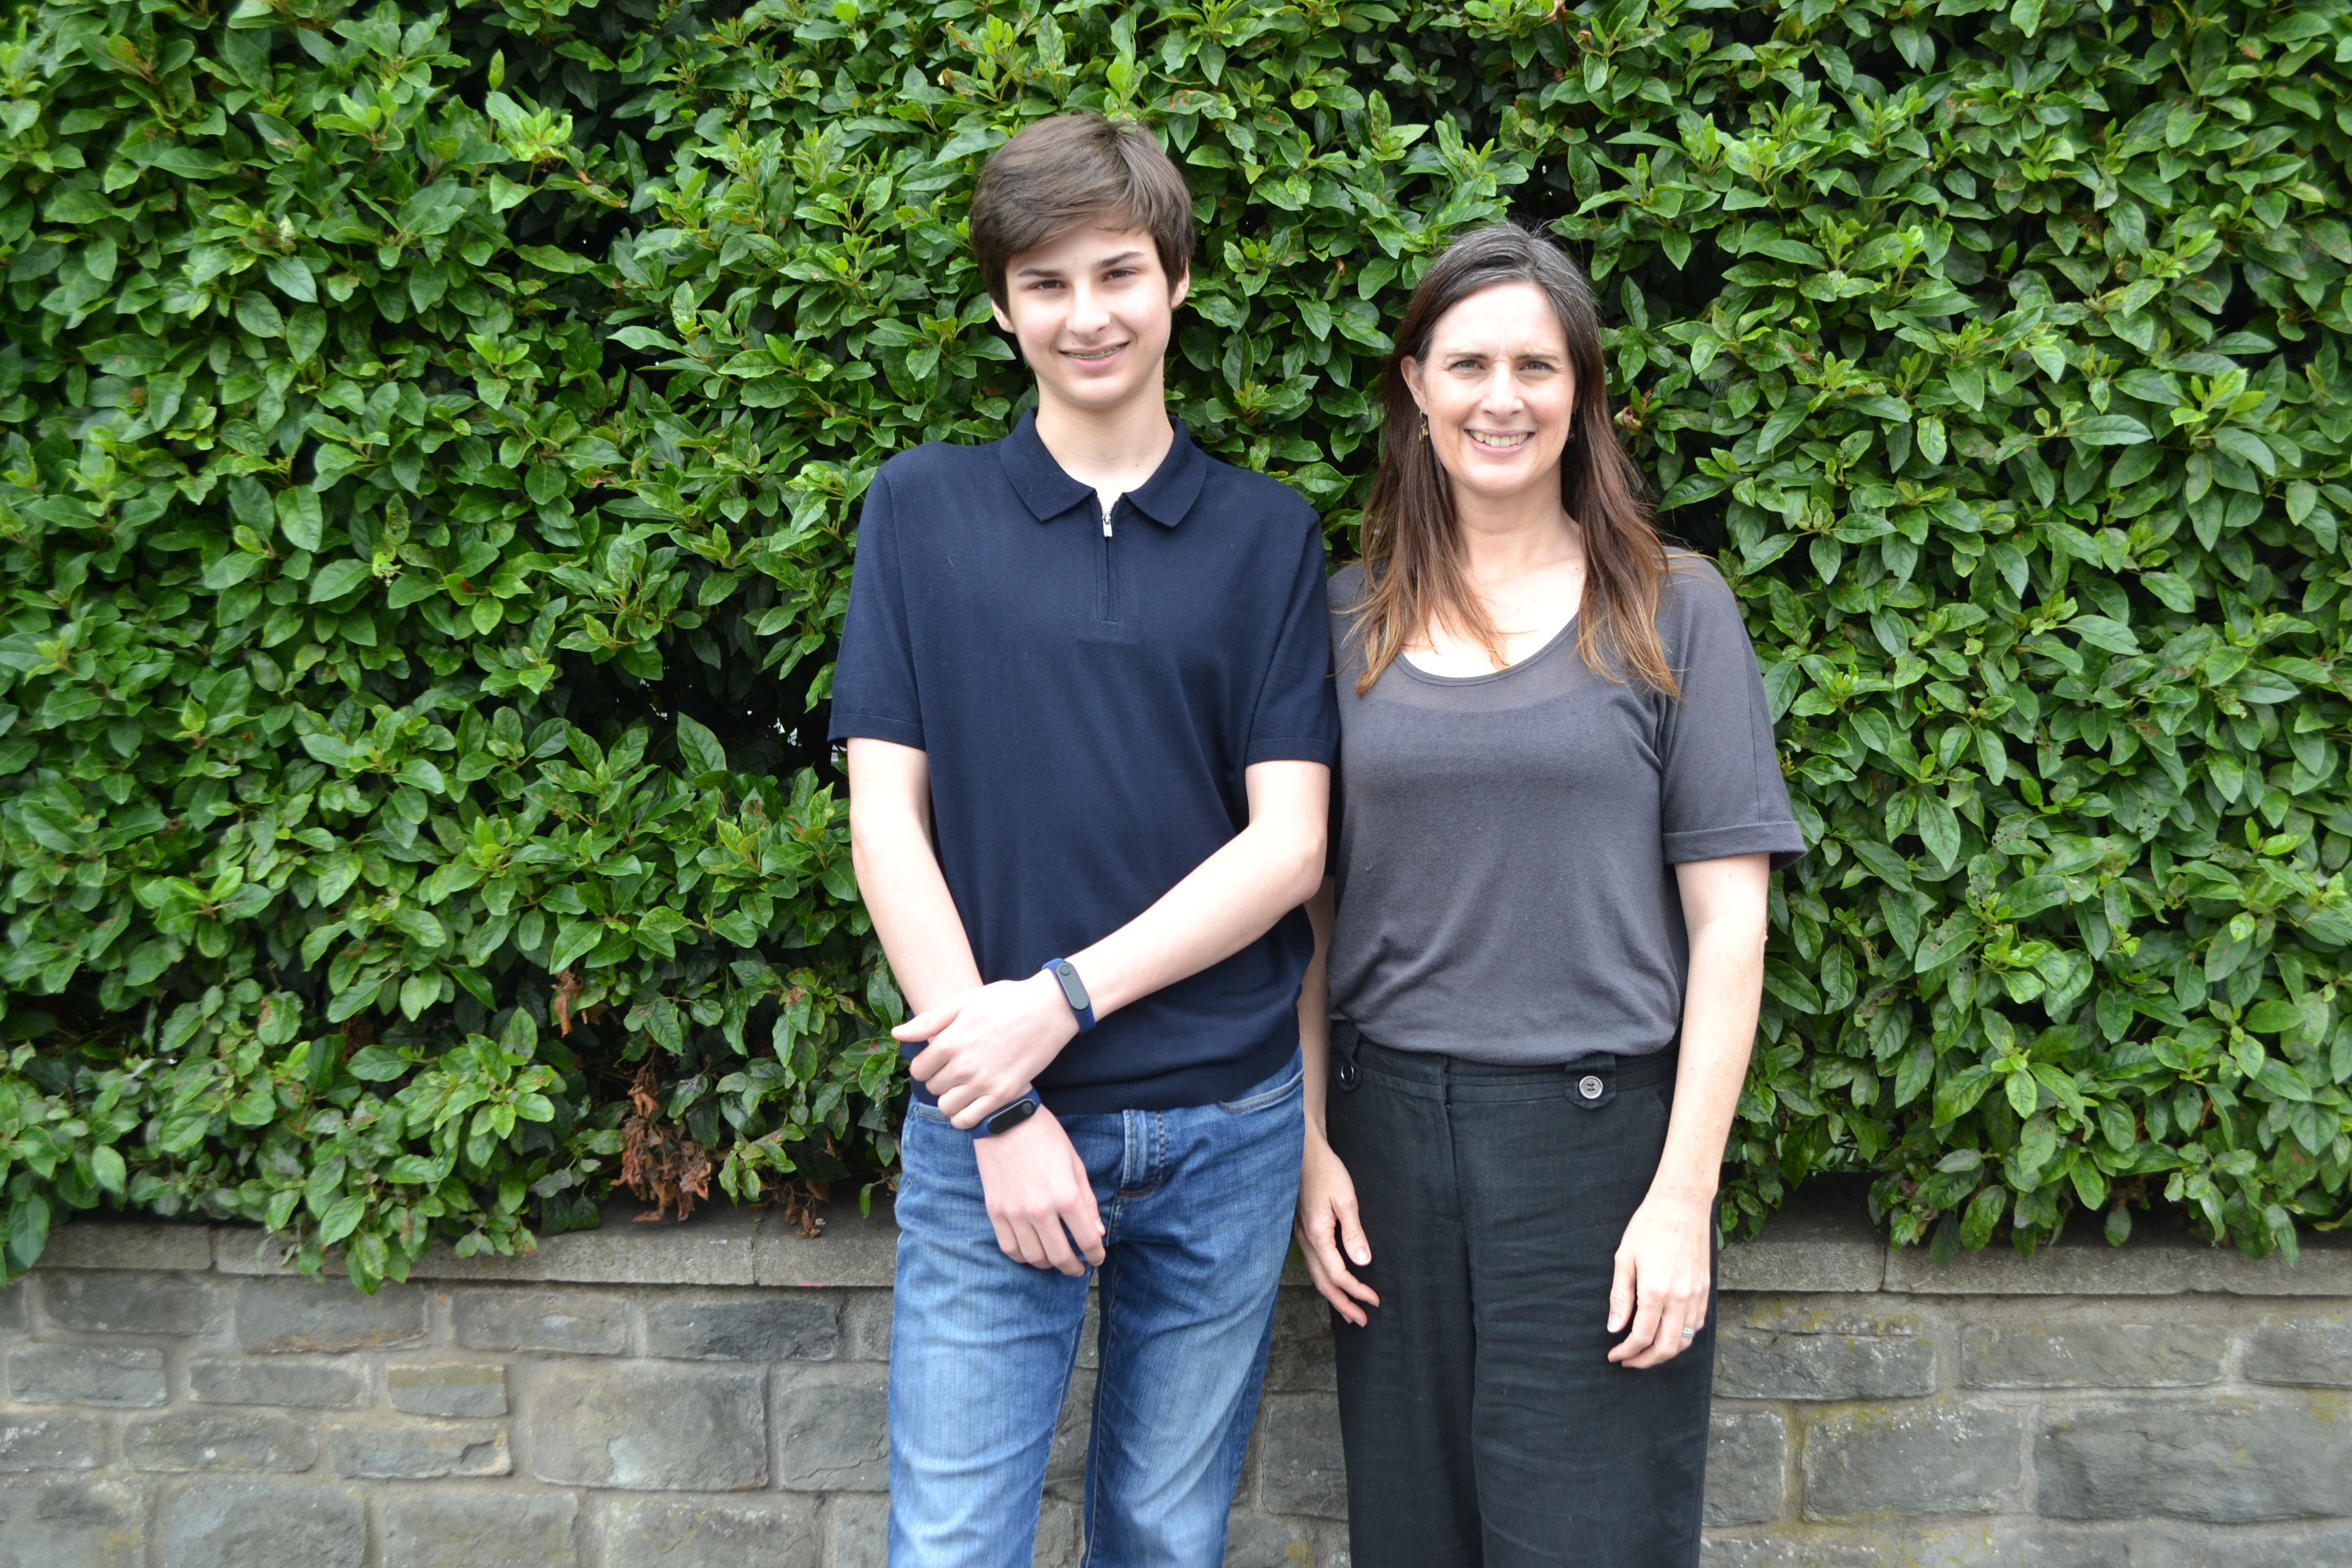 Max has developed the technology alongside his mother, Natalie